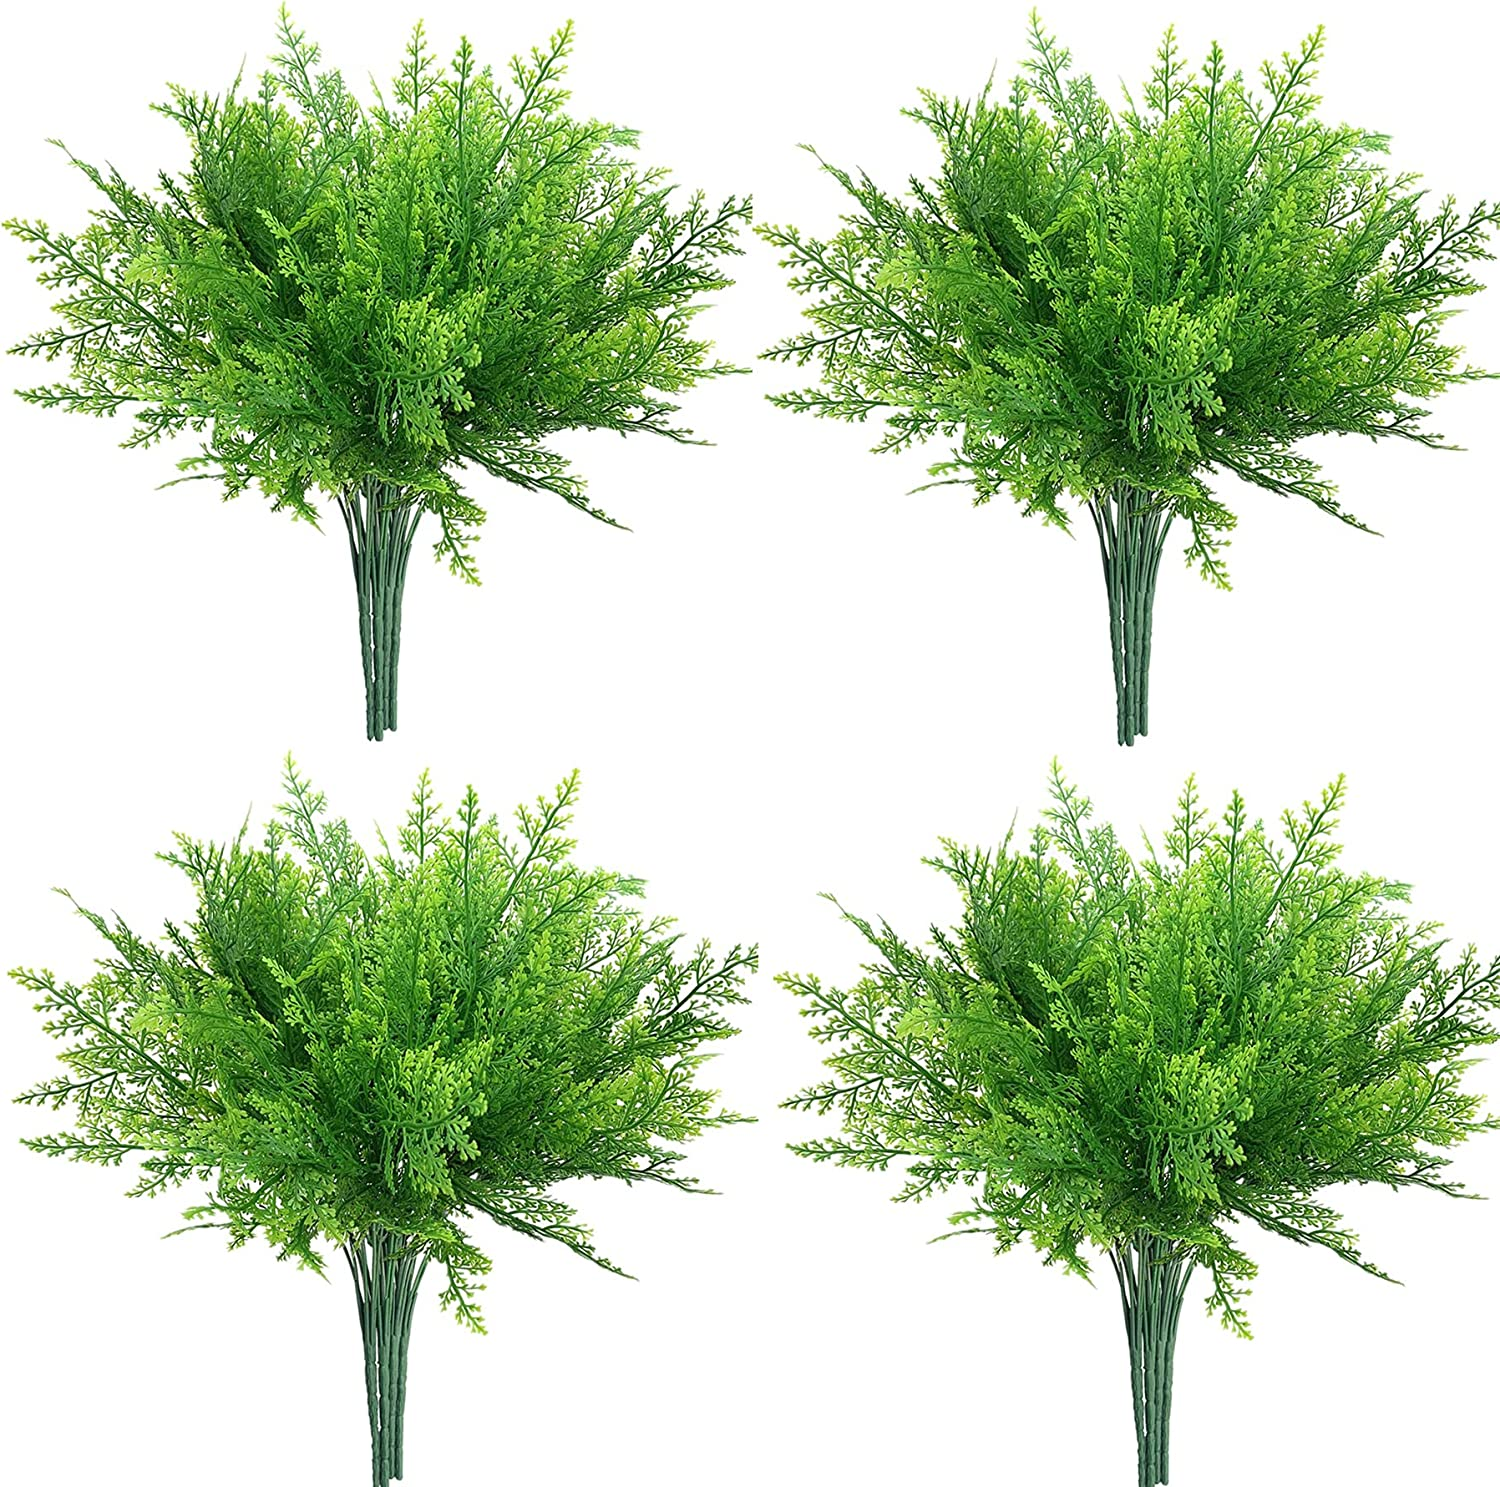 12 Ultra-Cheap Deals Max 55% OFF Bunches Artificial Ferns for Plants Outdoors Fake PASYOU Plas